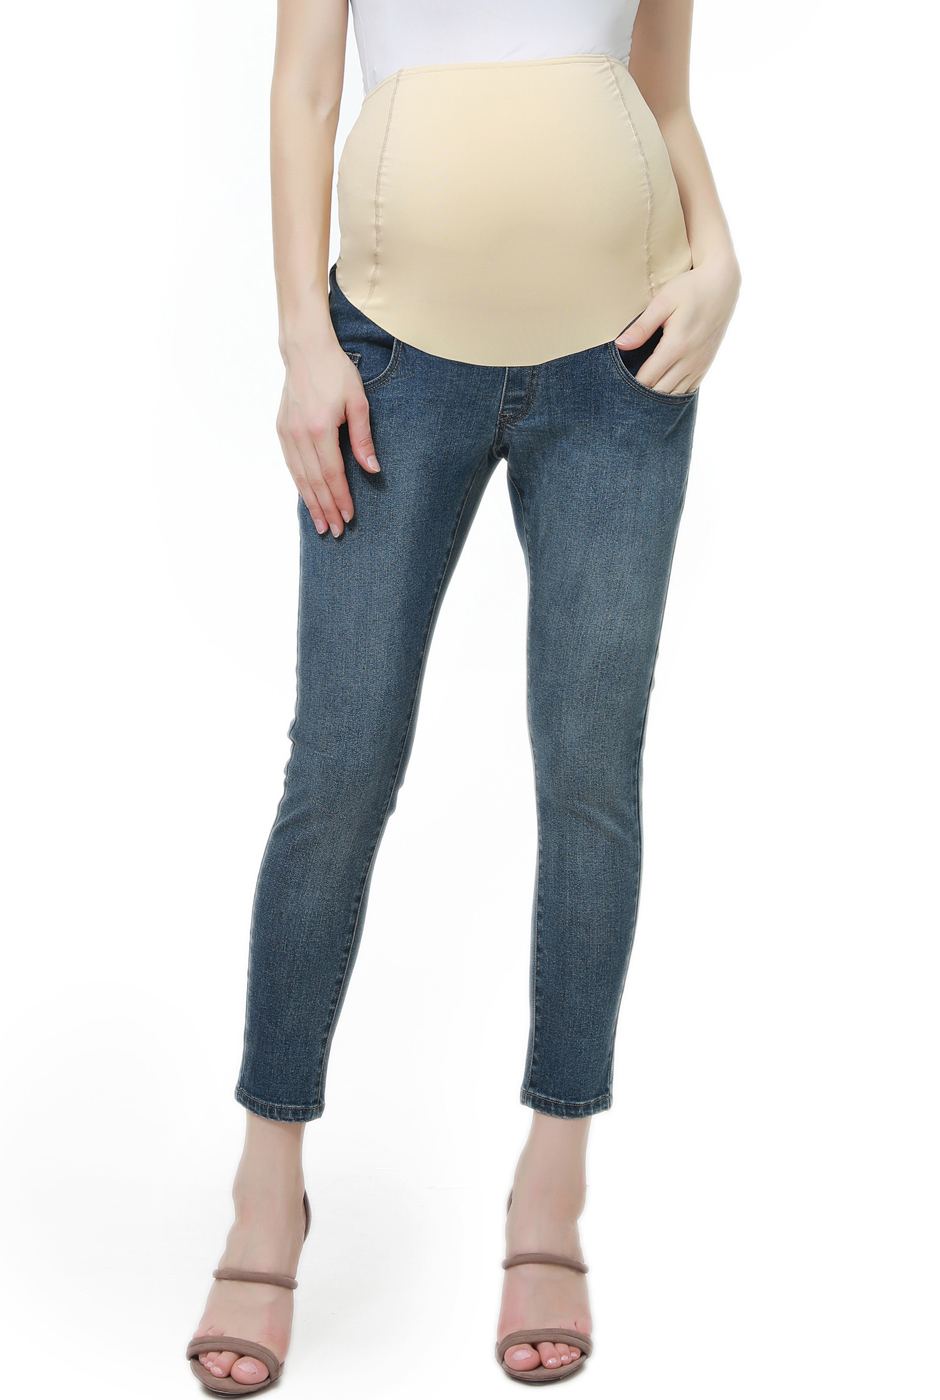 Maternity Women's Cropped Jeans - 28